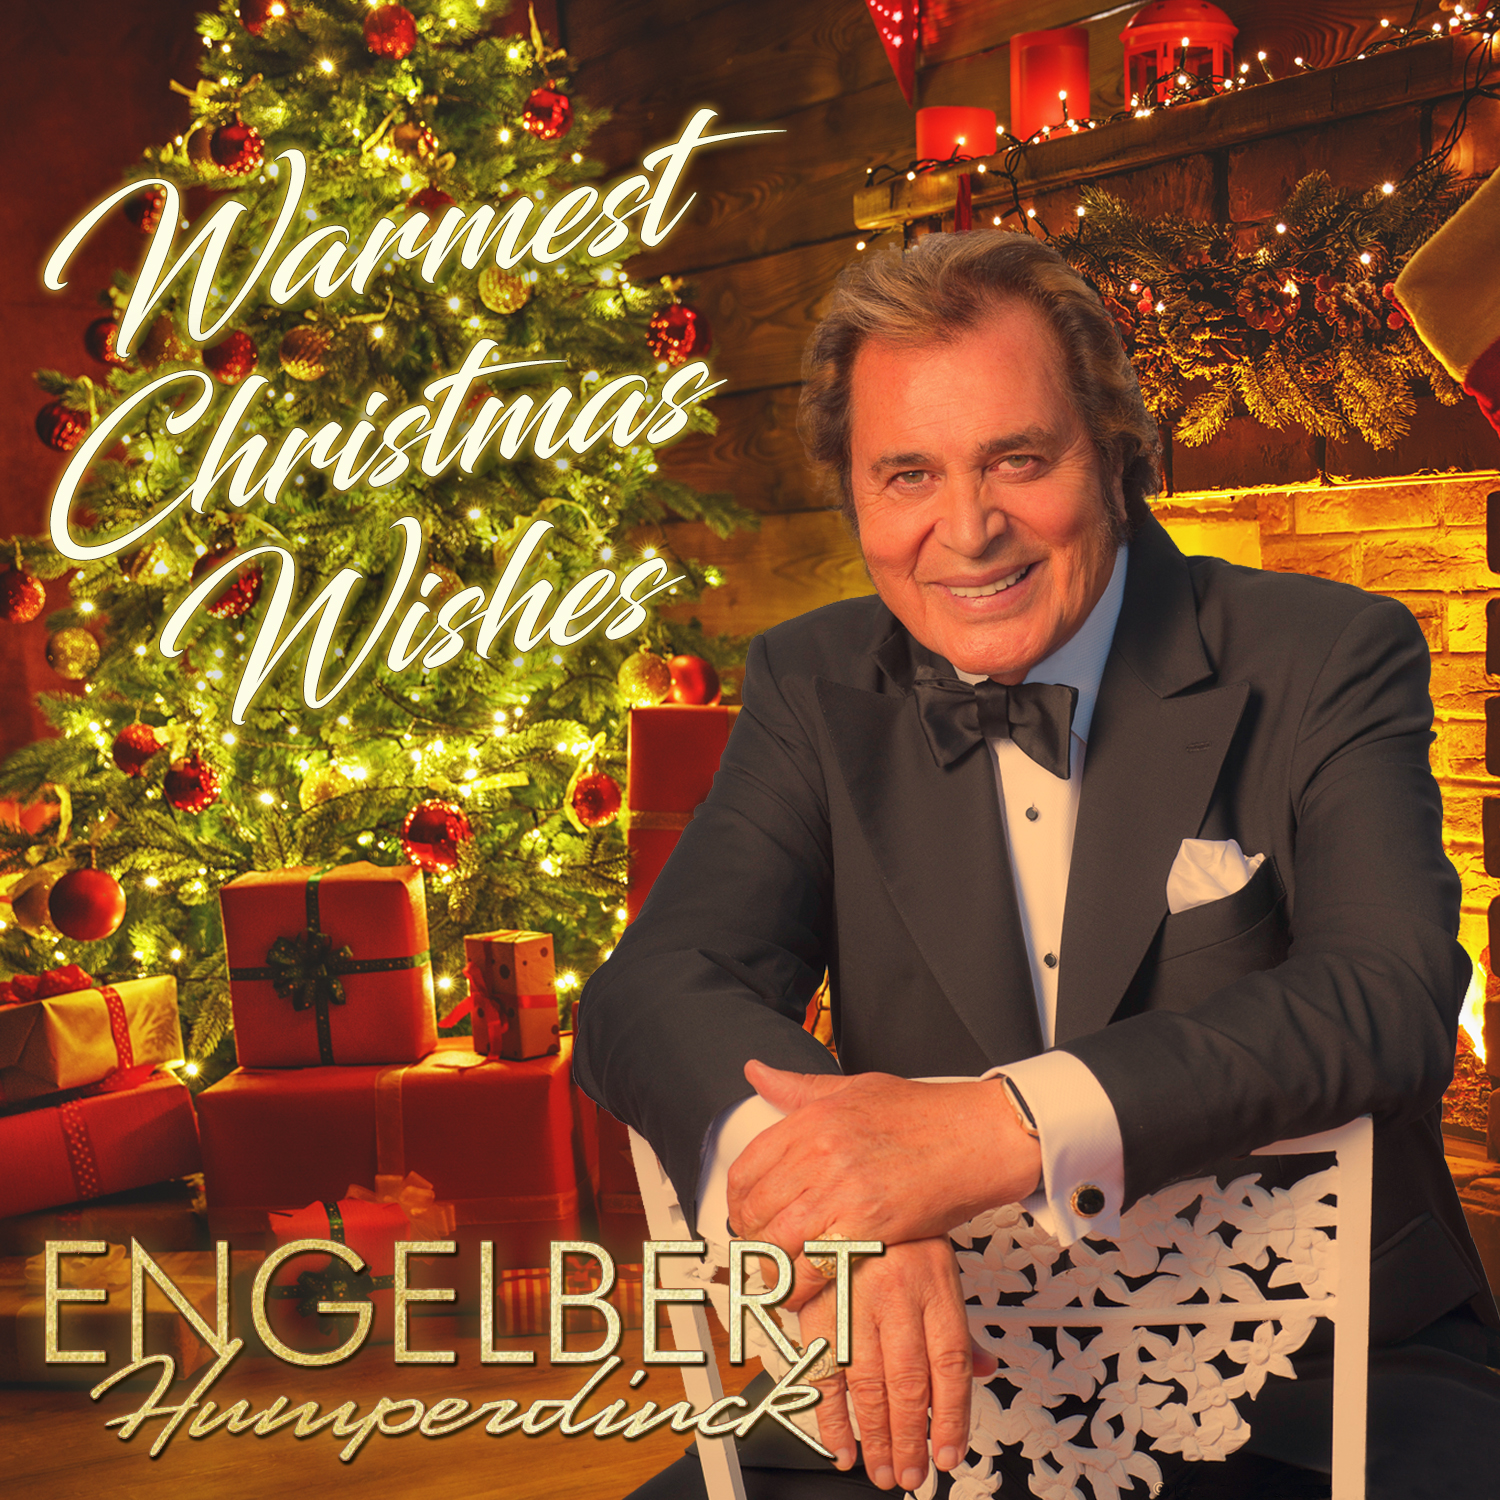 ENGELBERT HUMPERDINCK - Warmest Christmas Wishes